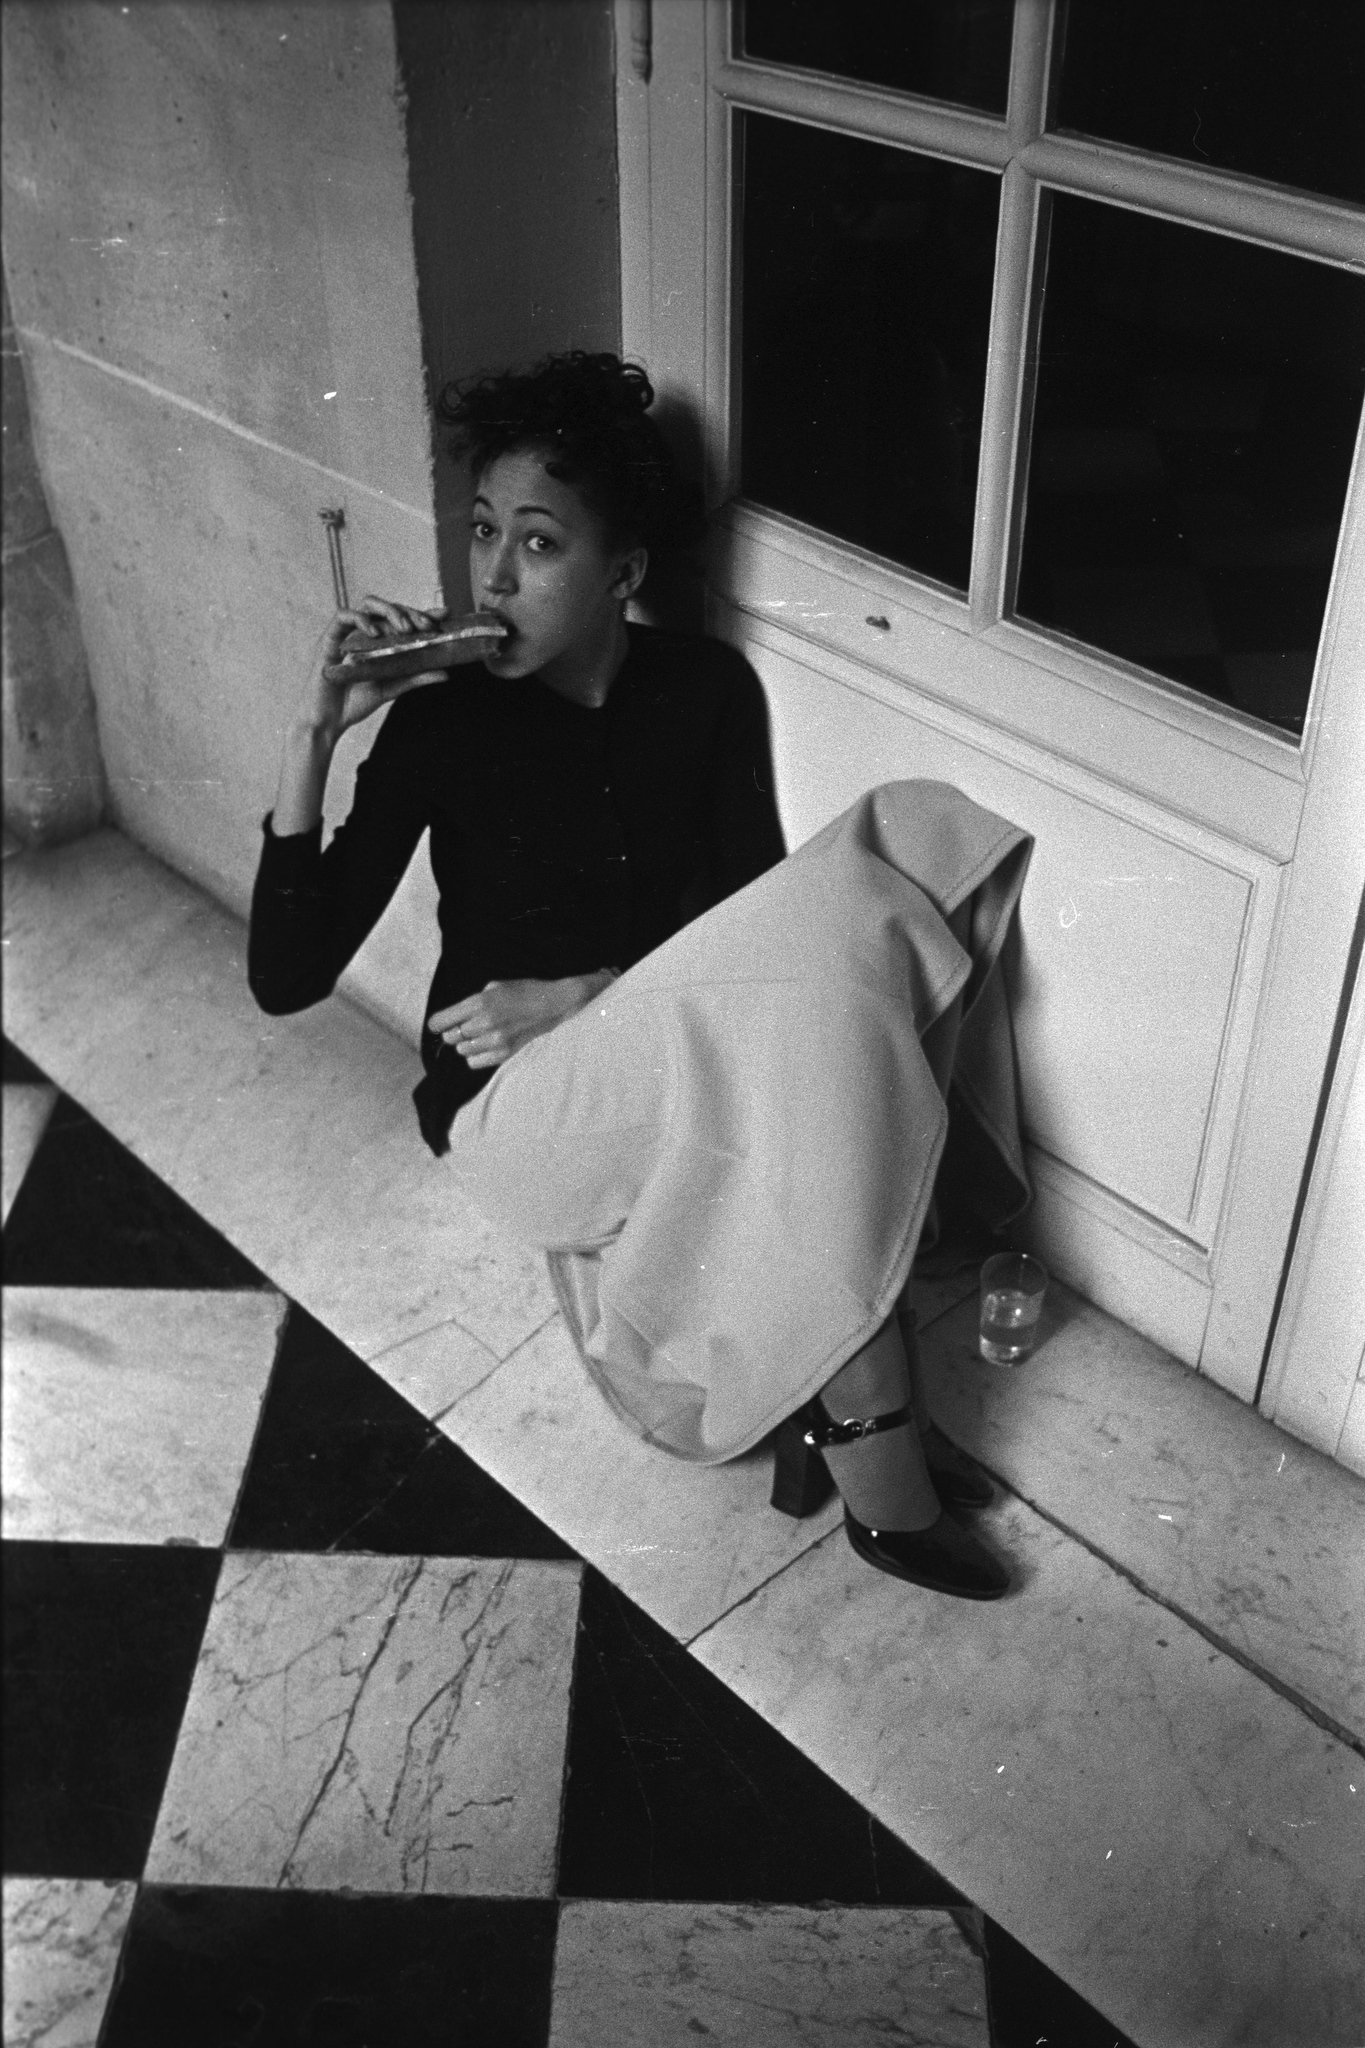 Pat Cleveland eating a sandwich backstage during the fashion show to benefit the restoration of the Chateau of Versailles, five American designers matching talents with five French couturiers at the Versailles Palace on November 28, 1973 in Versailles, France...Article title: 'One night and pouf! It's gone!Battle of Versailles, Versailles